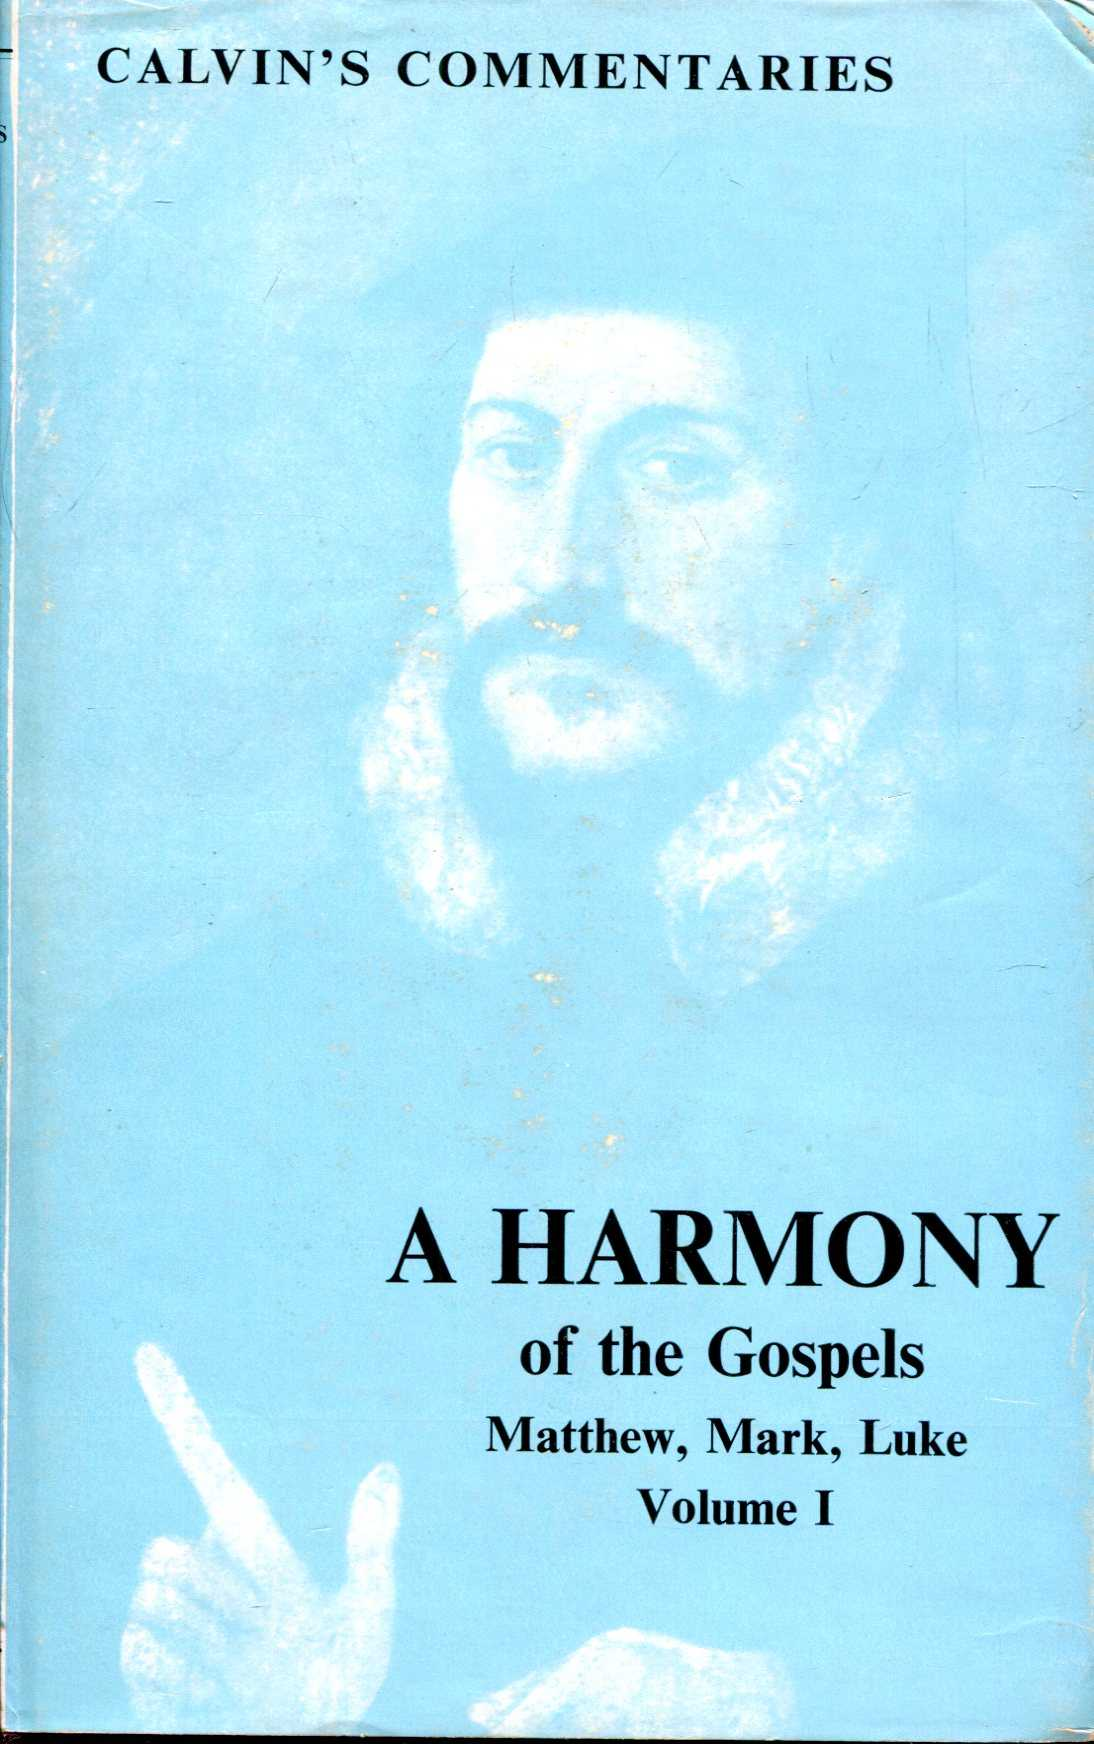 Image for A Harmony of the Gospels Matthew, Mark and Luke: volume I (Calvin's commentaries)